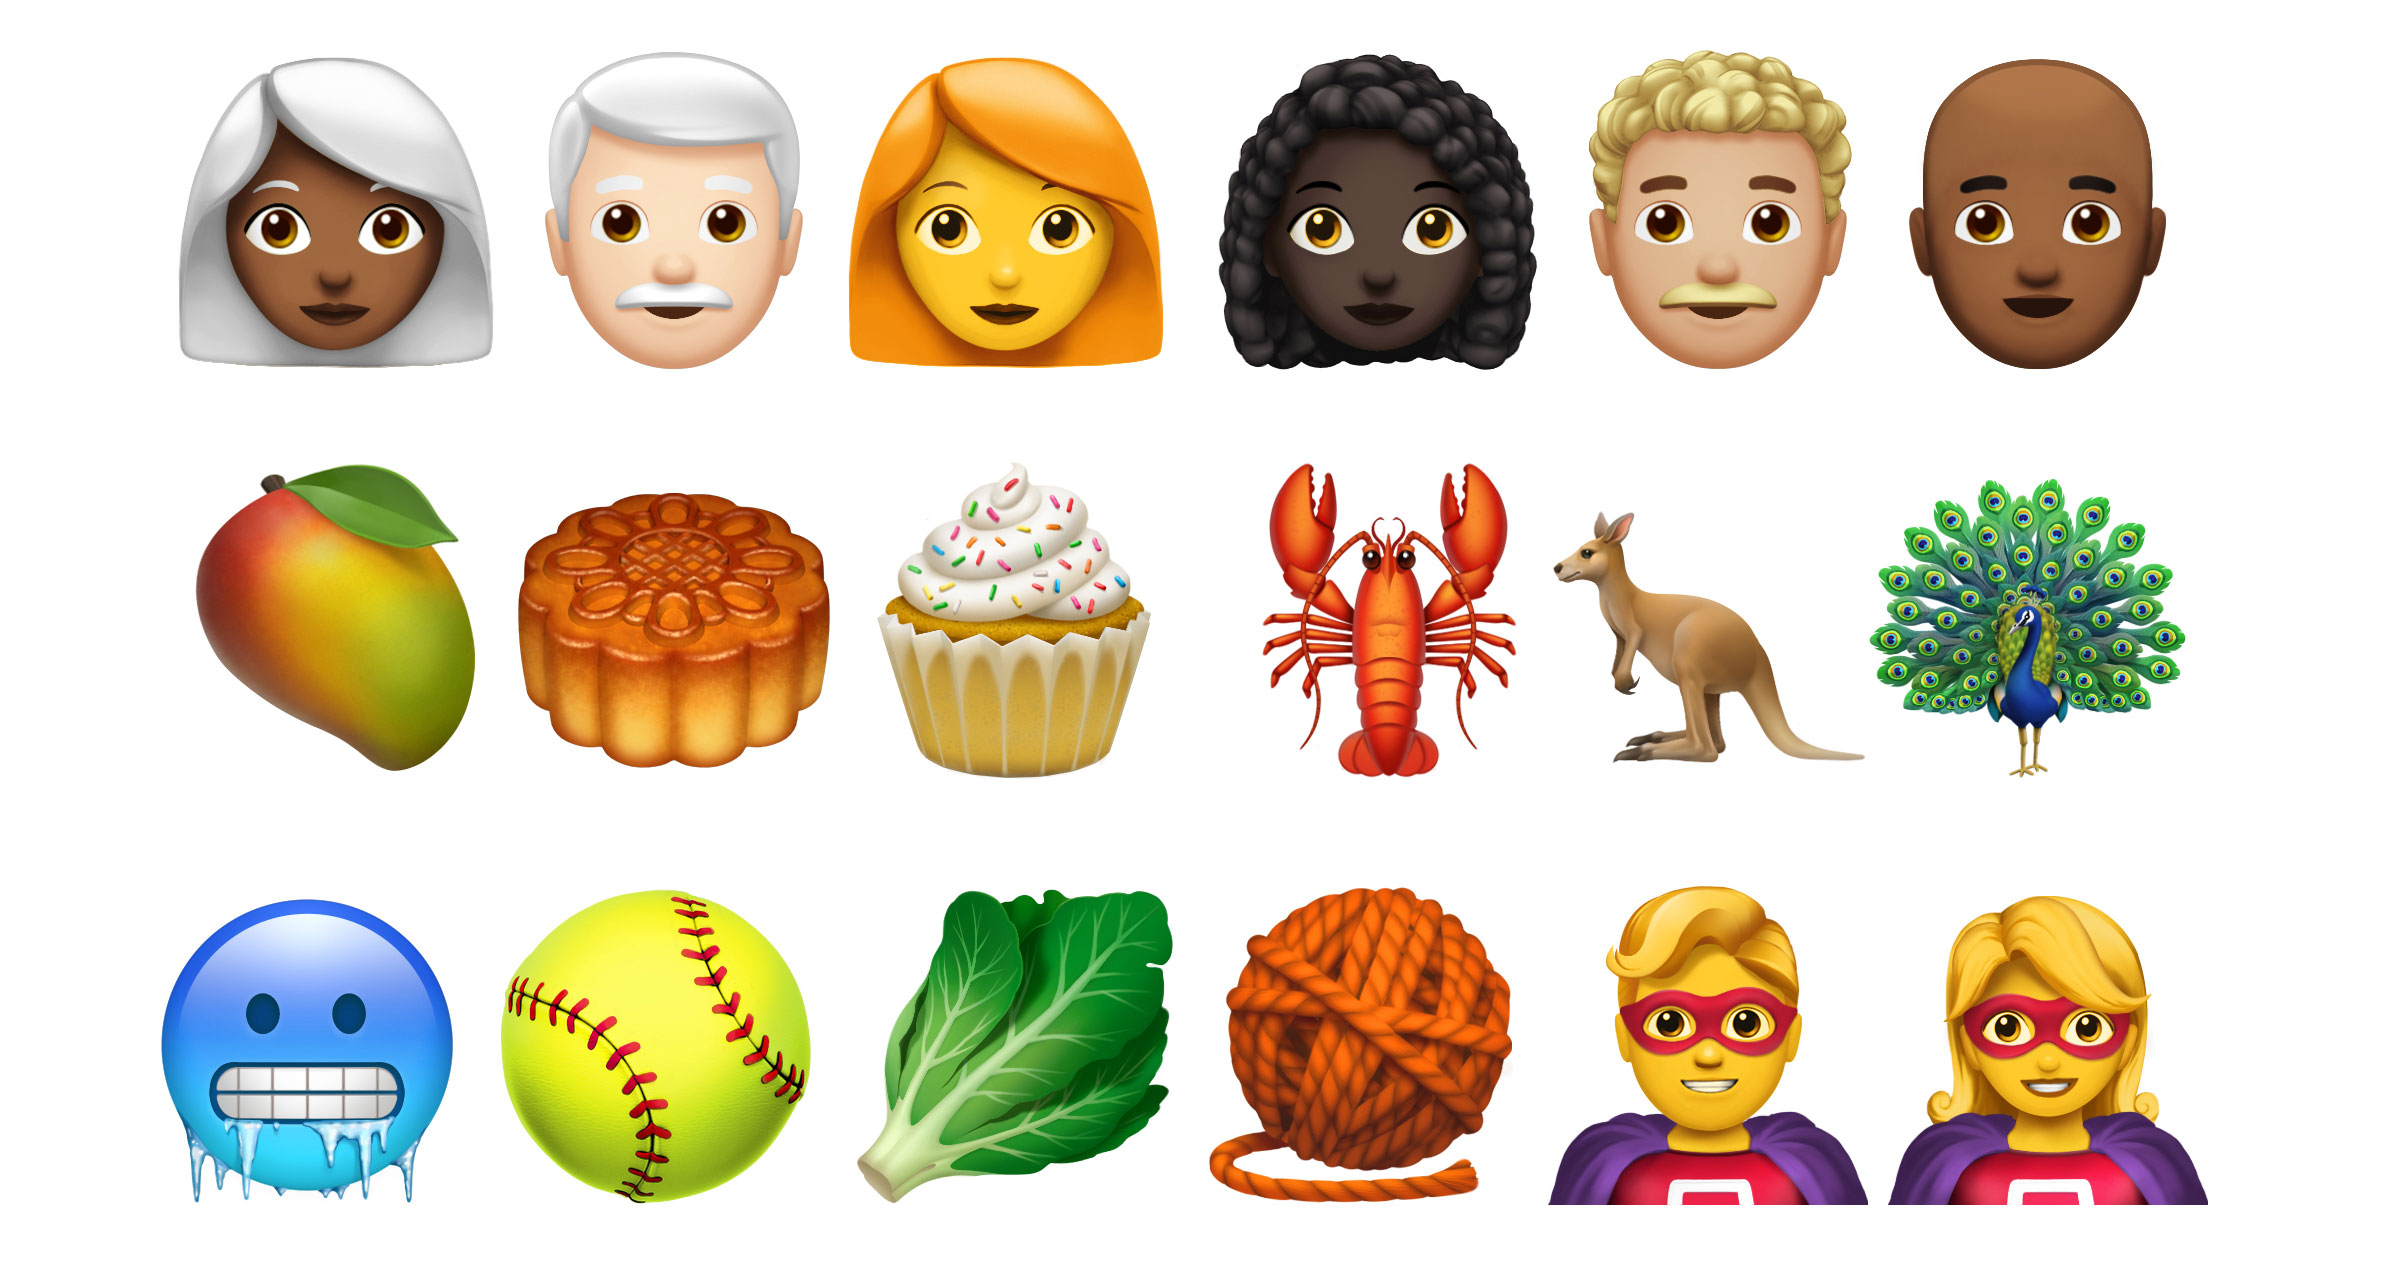 Apple emoji will soon include people with curly hair, white hair and